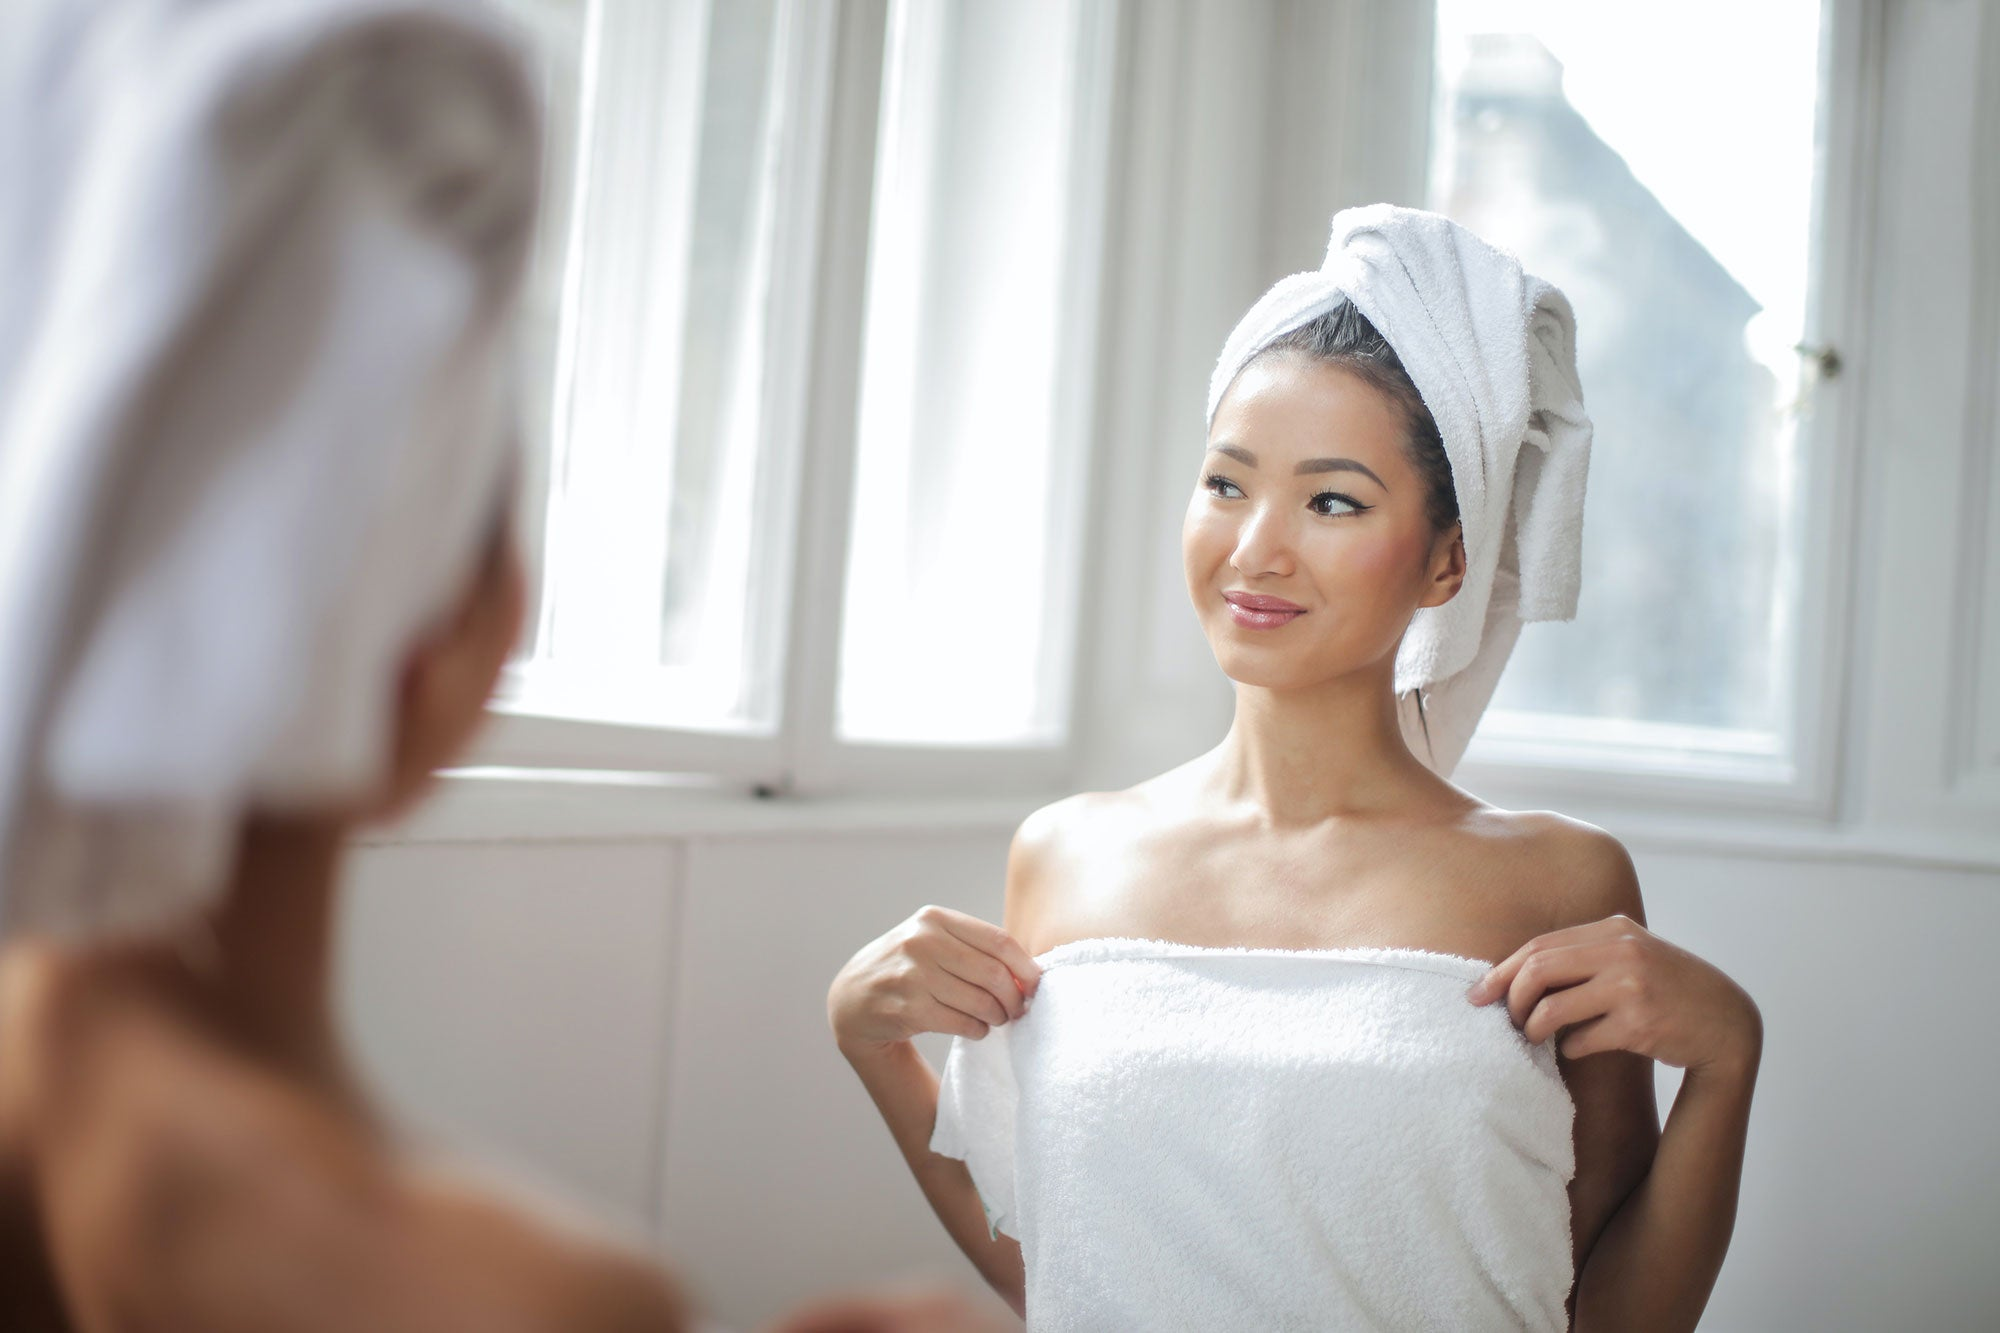 Woman in bath towel looking at herself in the mirror